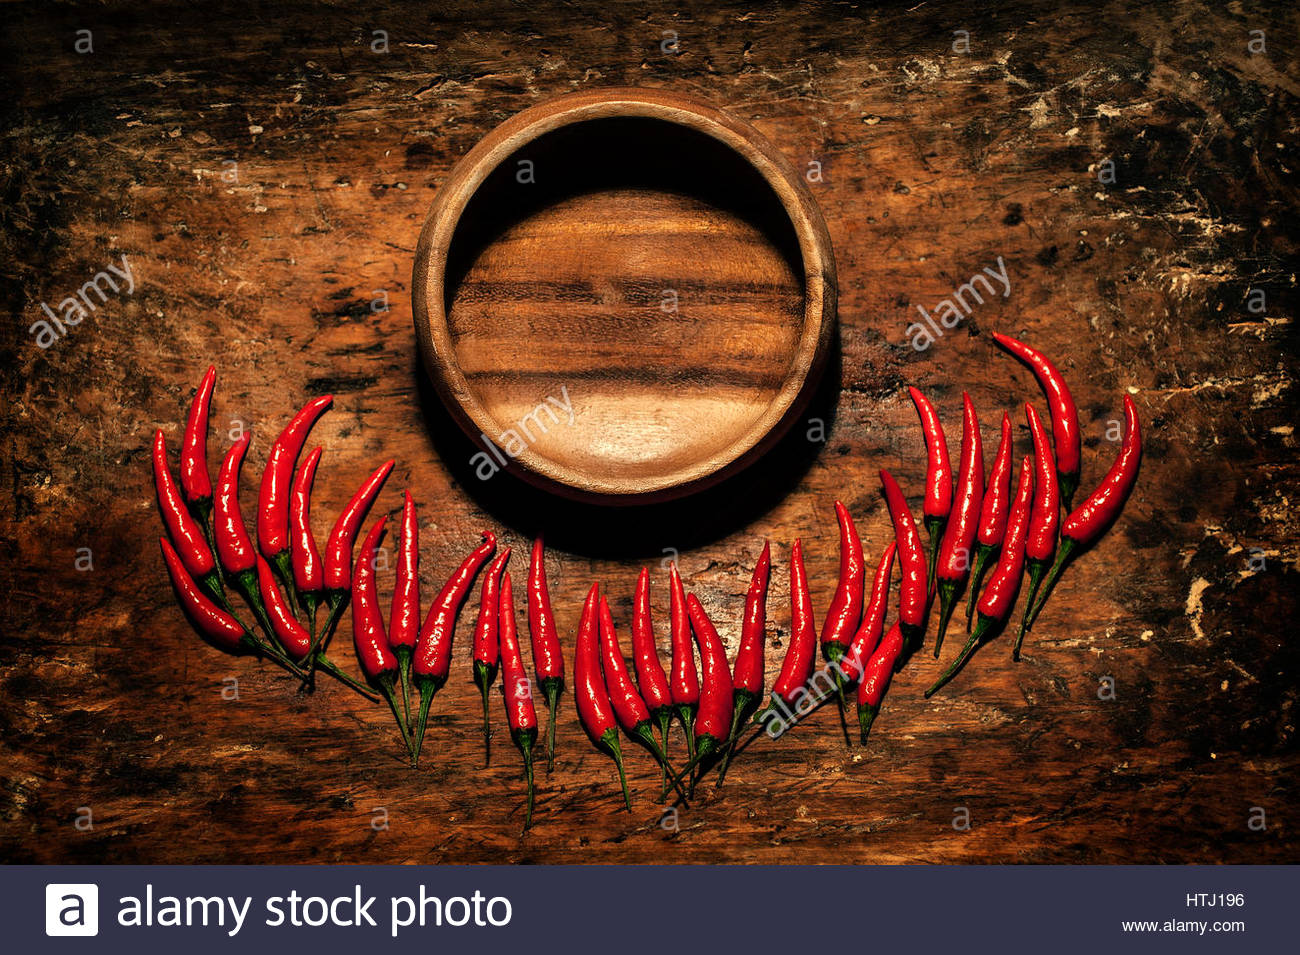 Red Hot Chili Peppers with wooden plate in over wooden rustic background with a place for an inscription. - Stock Image